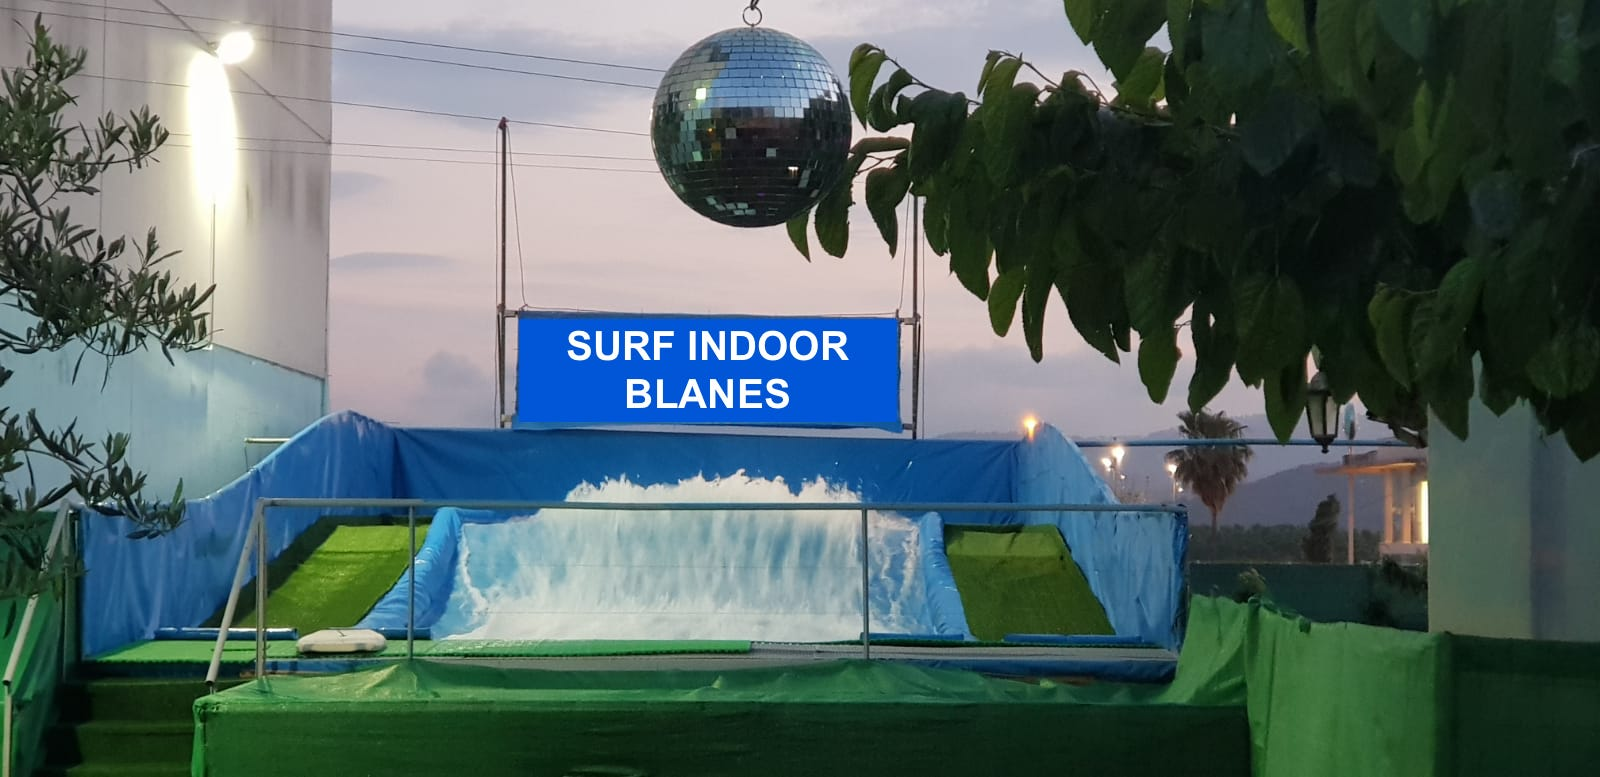 SURF INDOOR BLANES